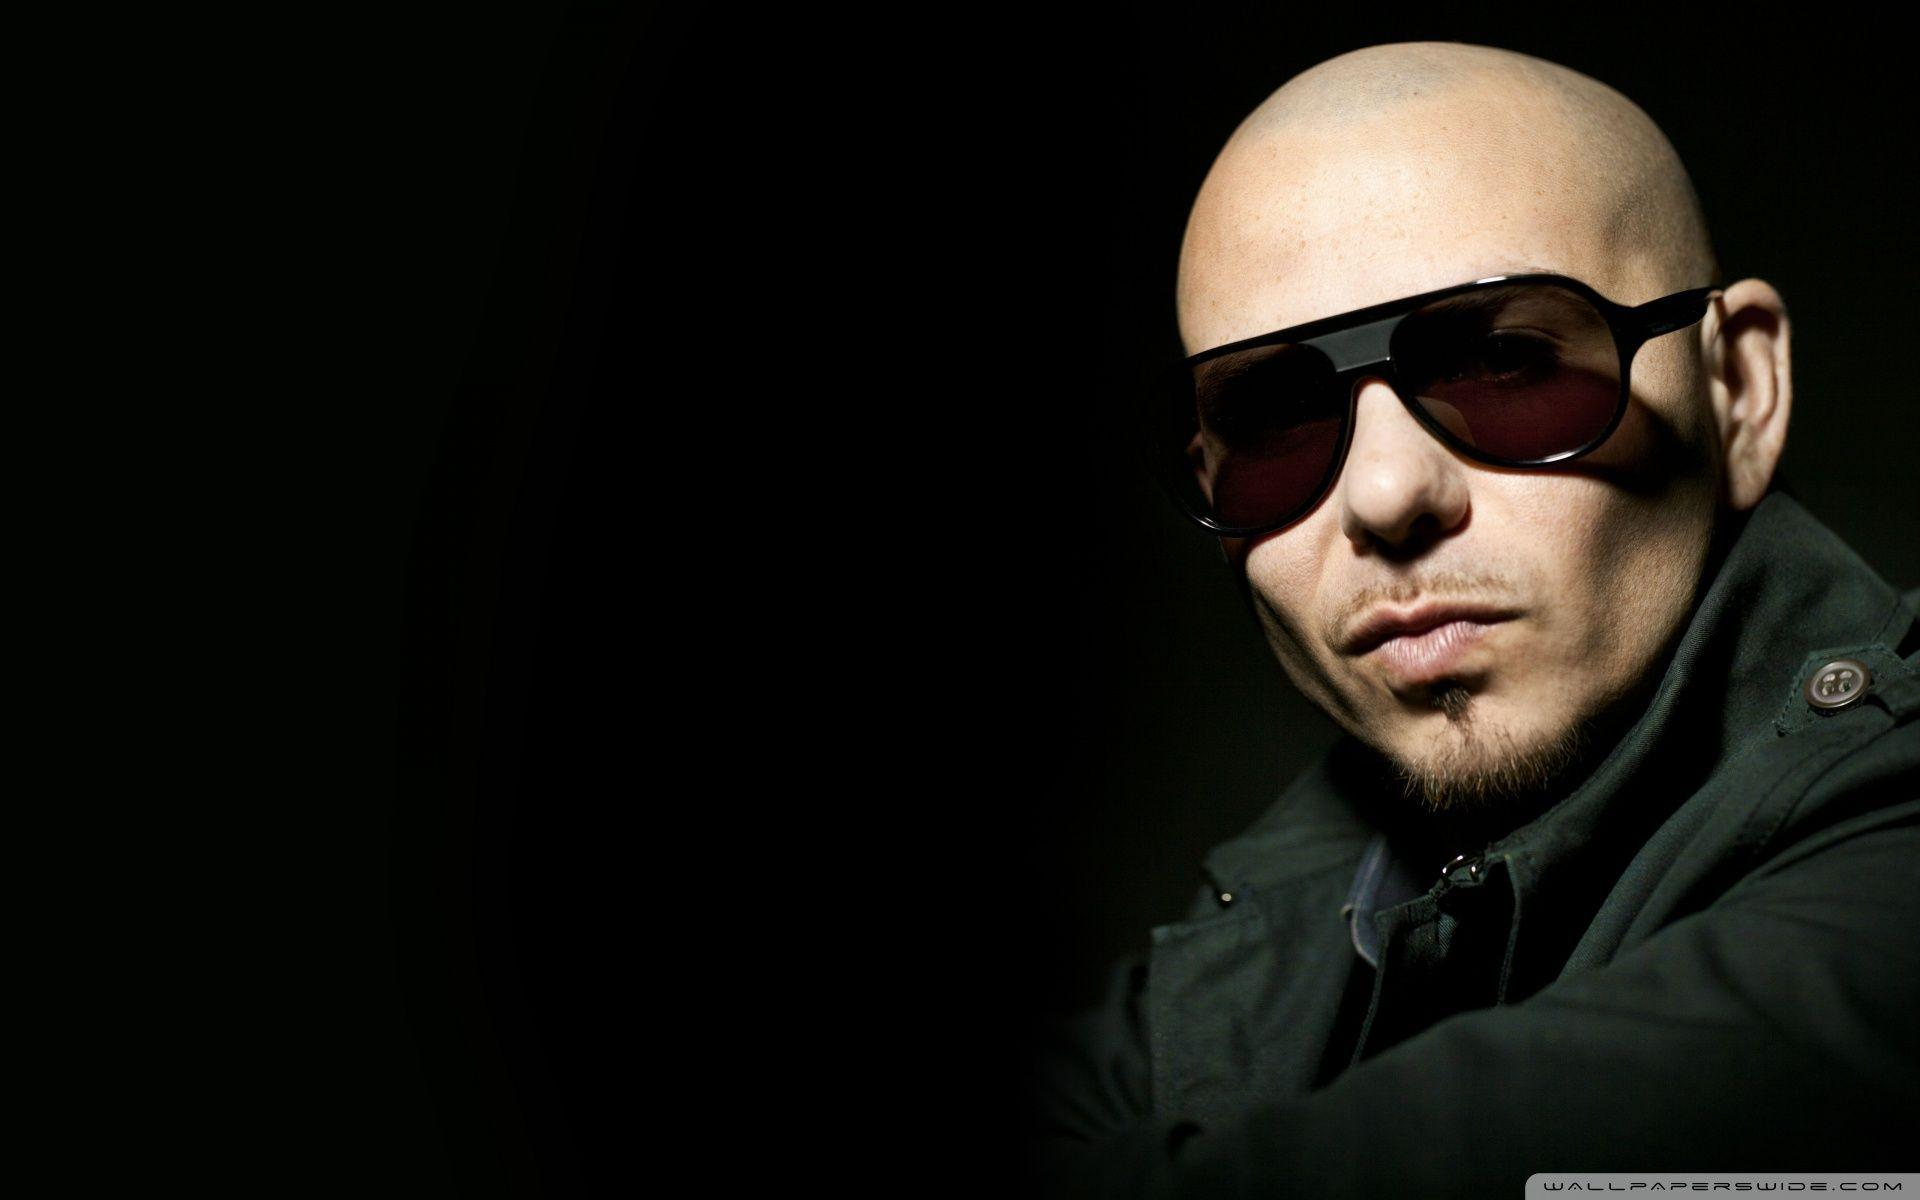 Pitbull rapper wallpapers wallpaper cave wallpapers for pitbull rapper wallpaper hd voltagebd Image collections